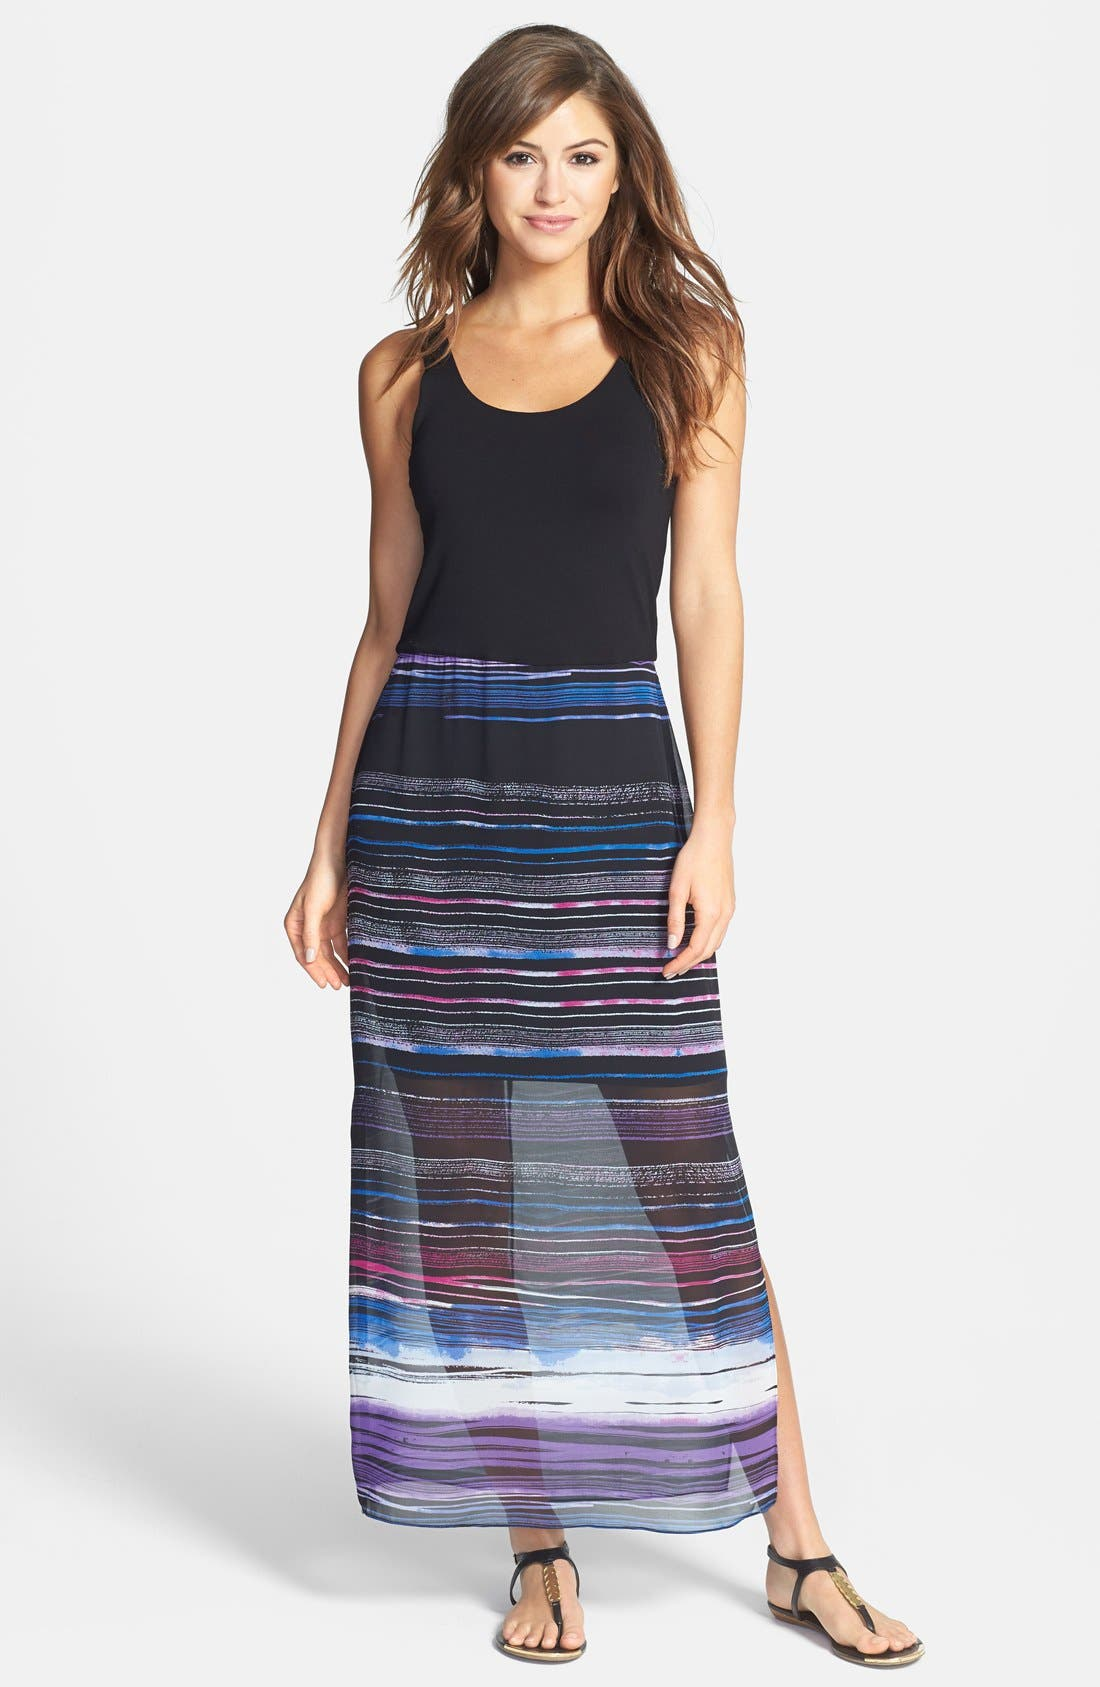 Alternate Image 1 Selected - Vince Camuto 'Sweep Stripe' Chiffon Overlay Maxi Dress (Regular & Petite)